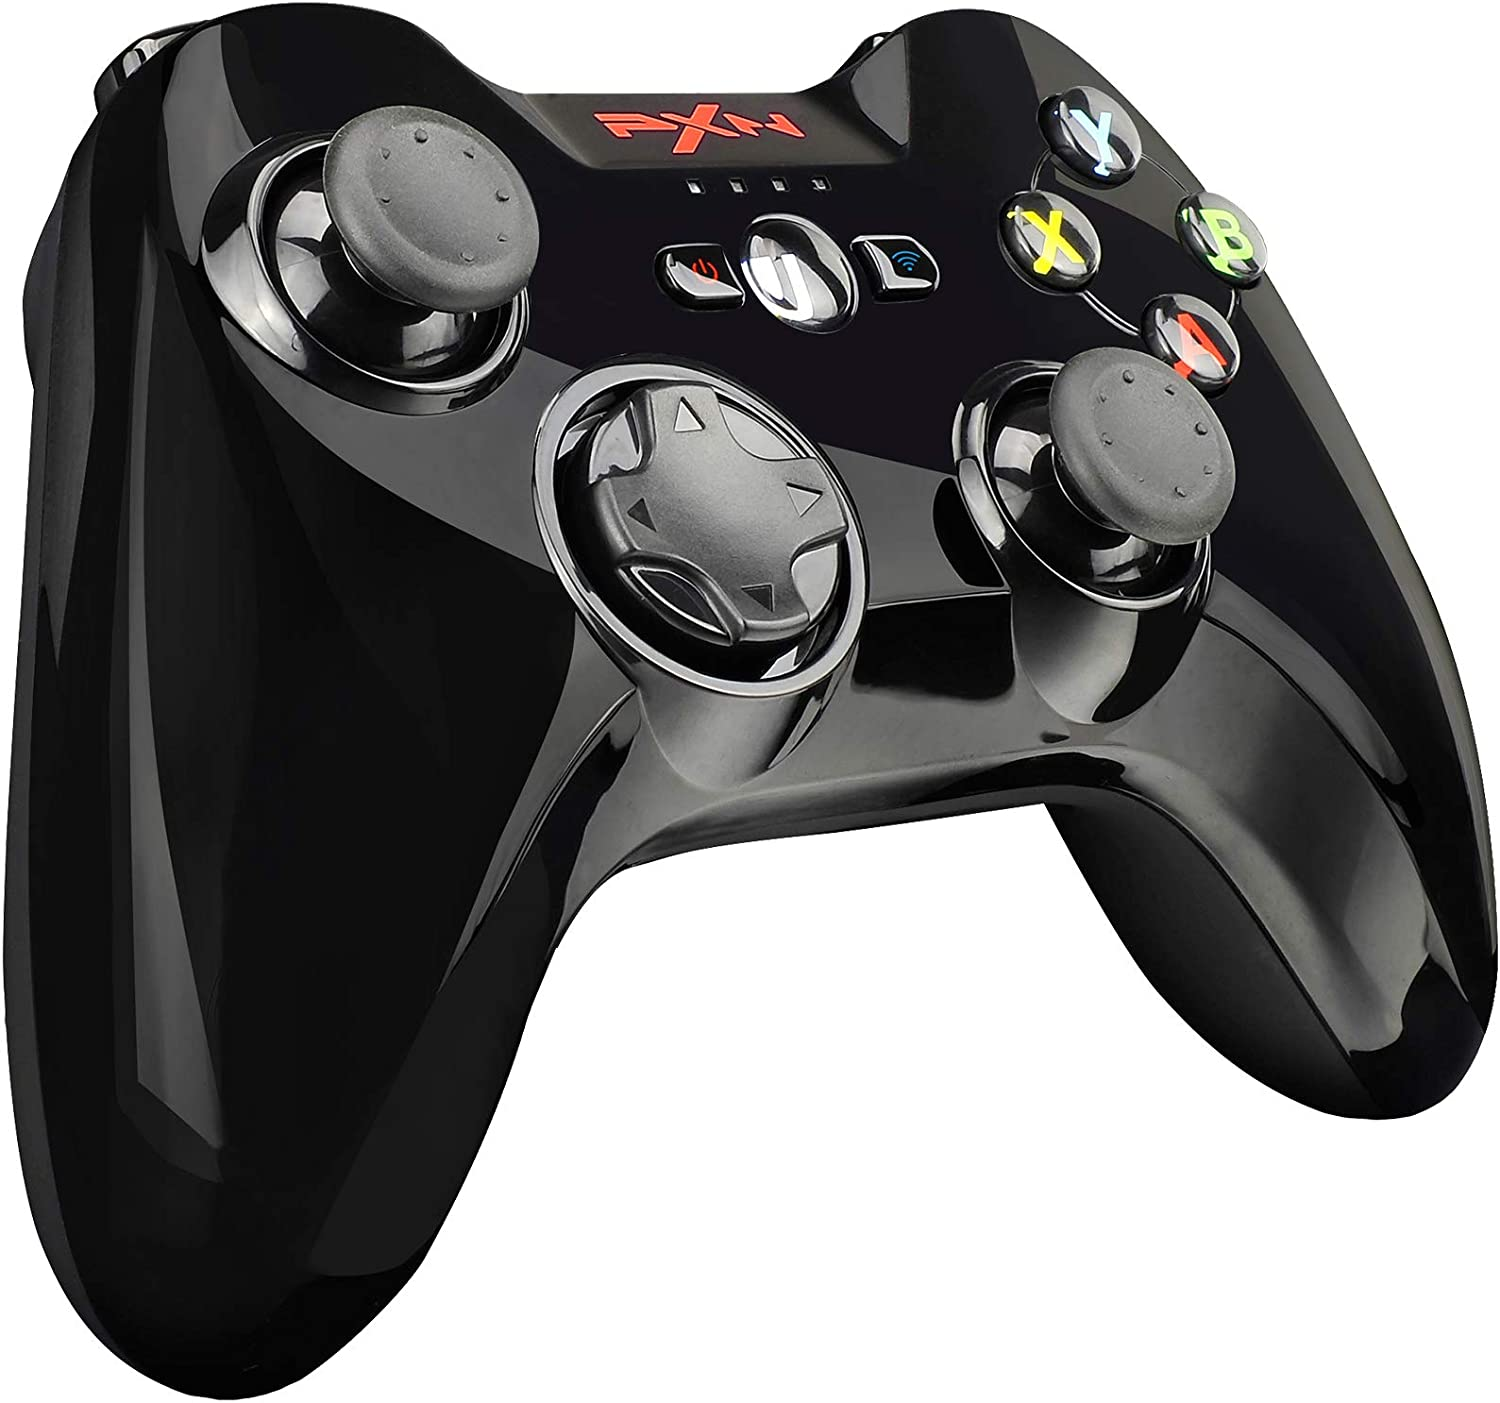 PXN Wireless Mobile Gaming Controller for iPhone, iPad and Apple TV, MFi Certified Gamepad with Phone Clip(Black)